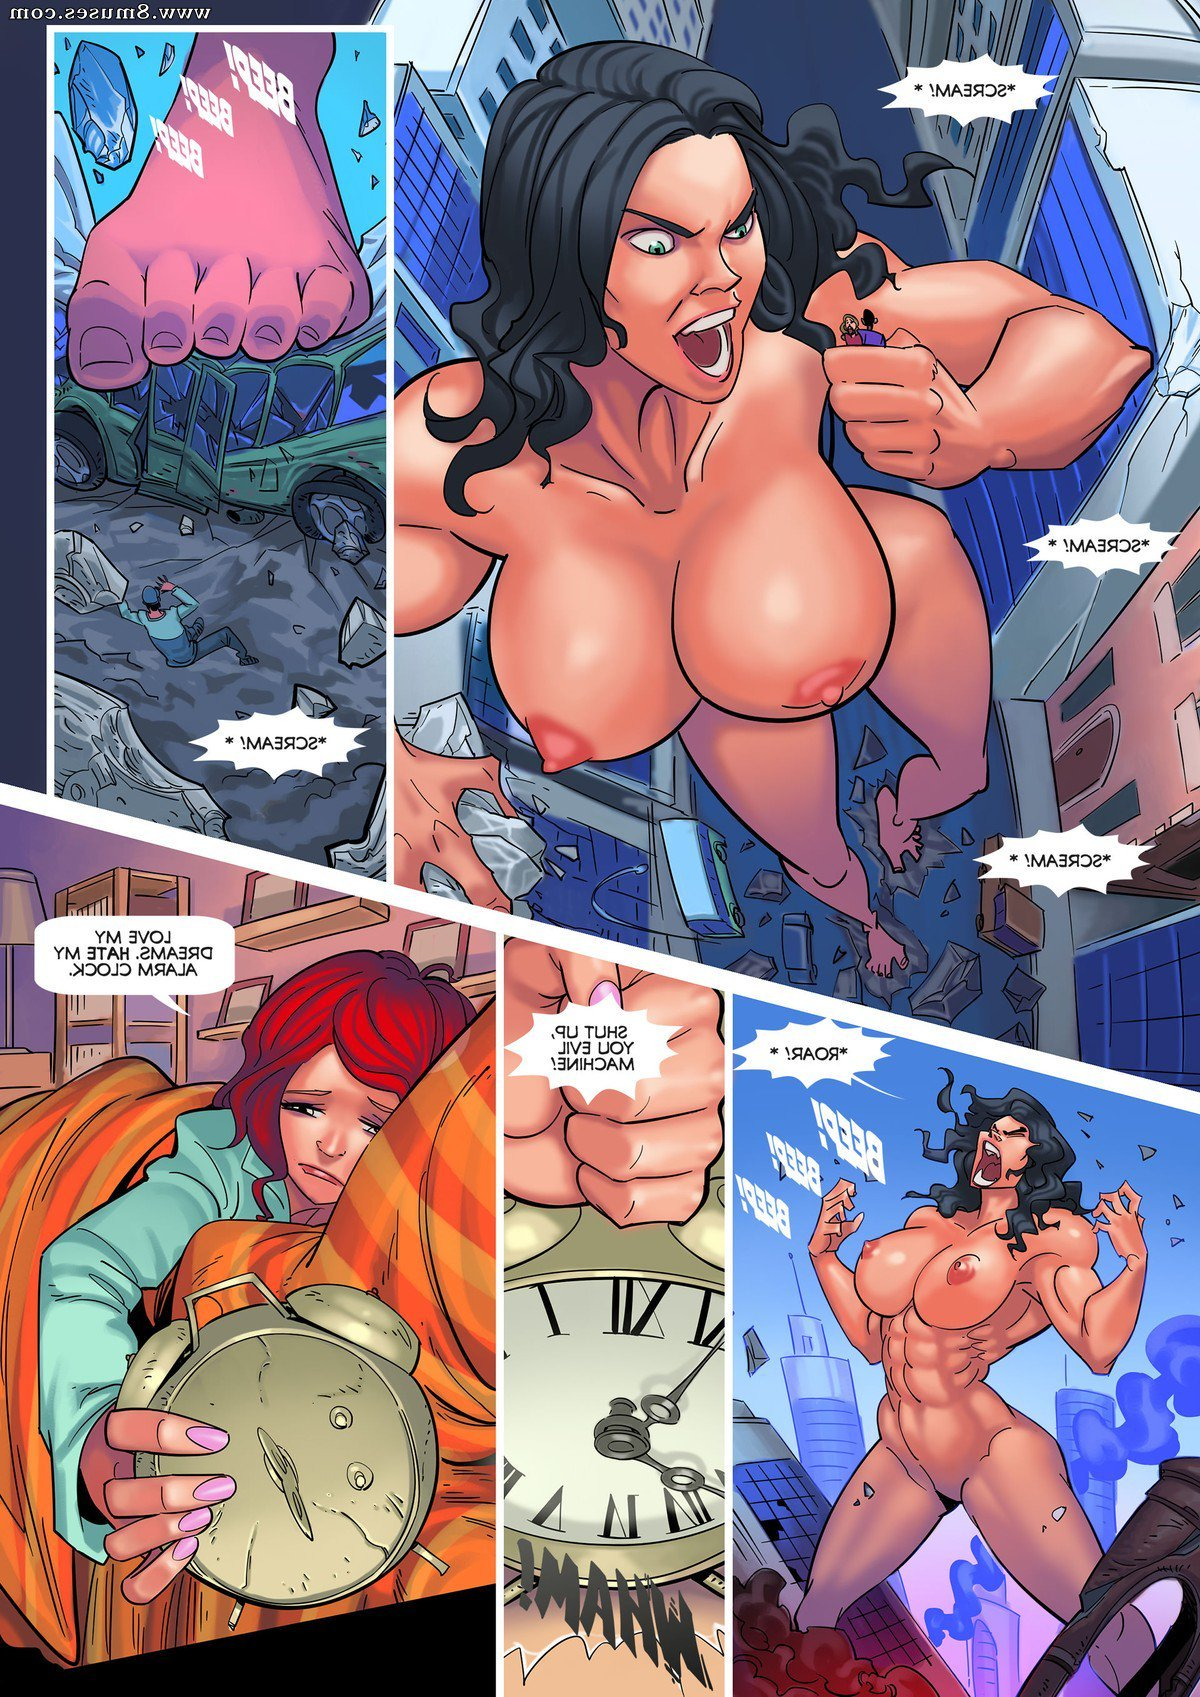 Giantess-Fan-Comics/Worst-Day-Ever/Issue-1 Worst_Day_Ever_-_Issue_1_4.jpg